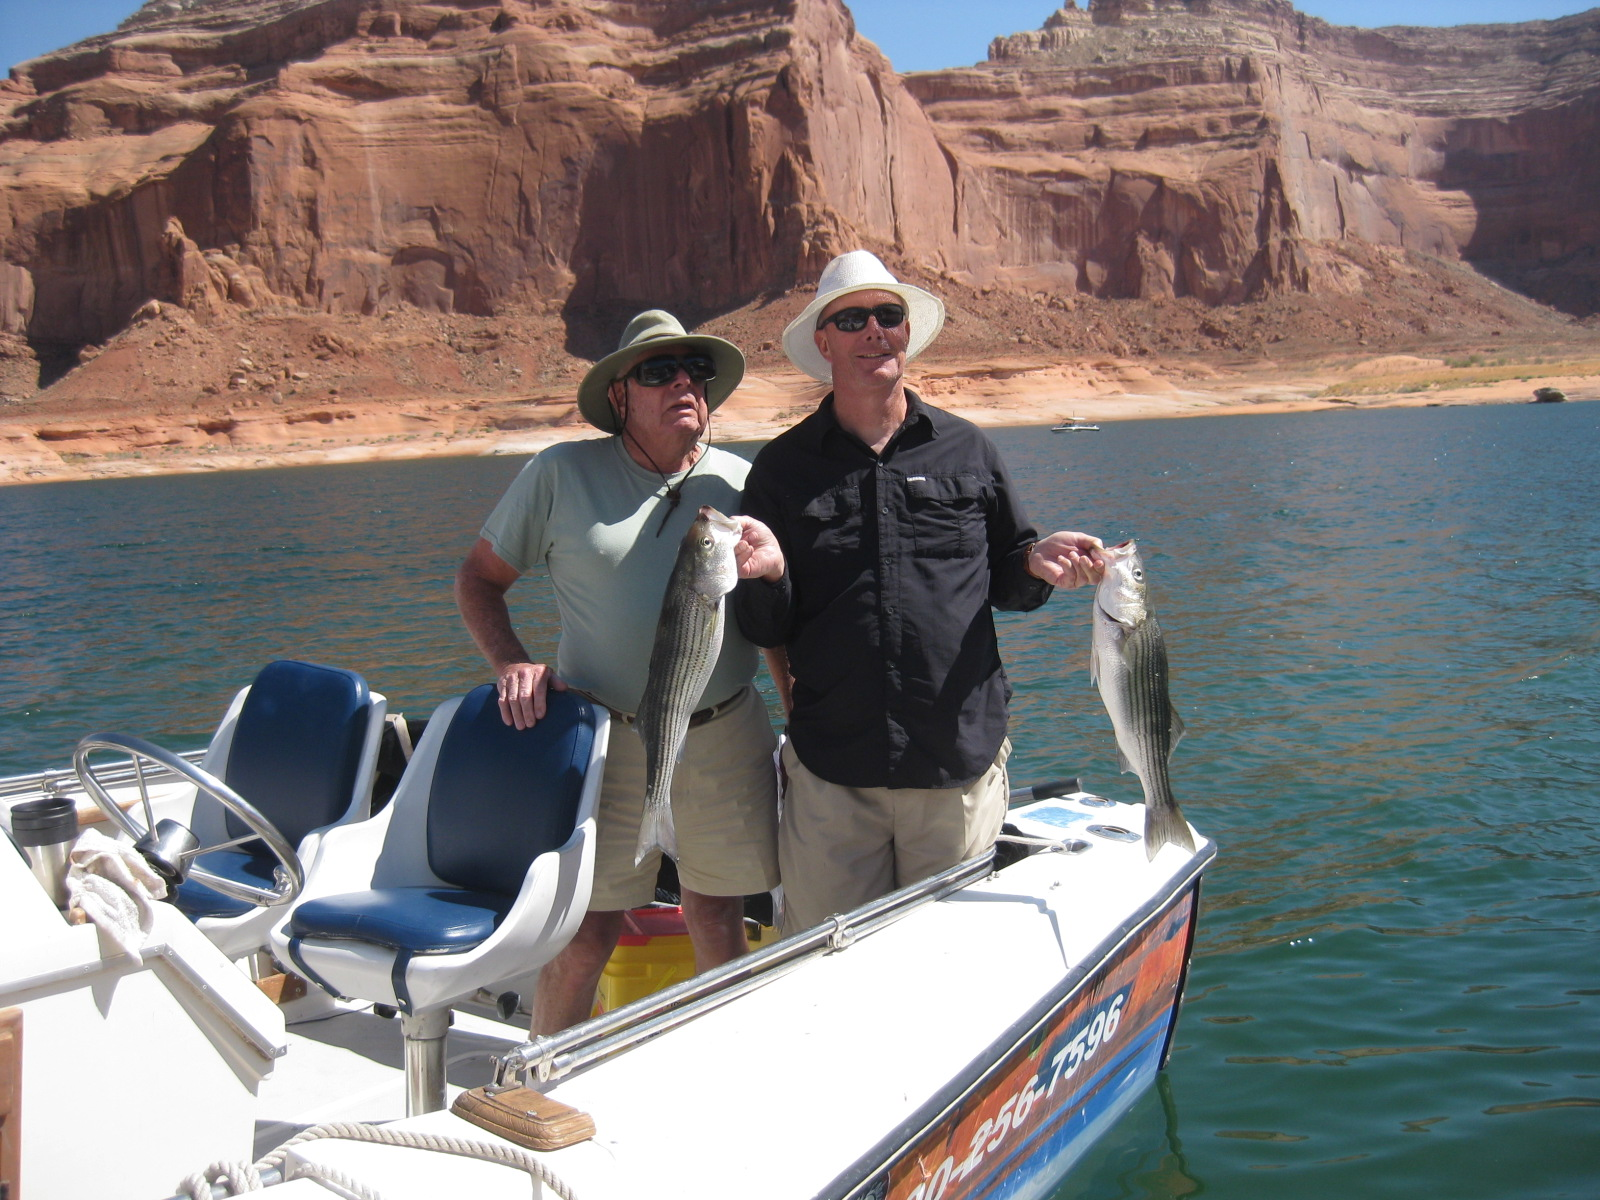 Bait fishing picture tag ambassador guides at lake powell for Lake powell florida fishing